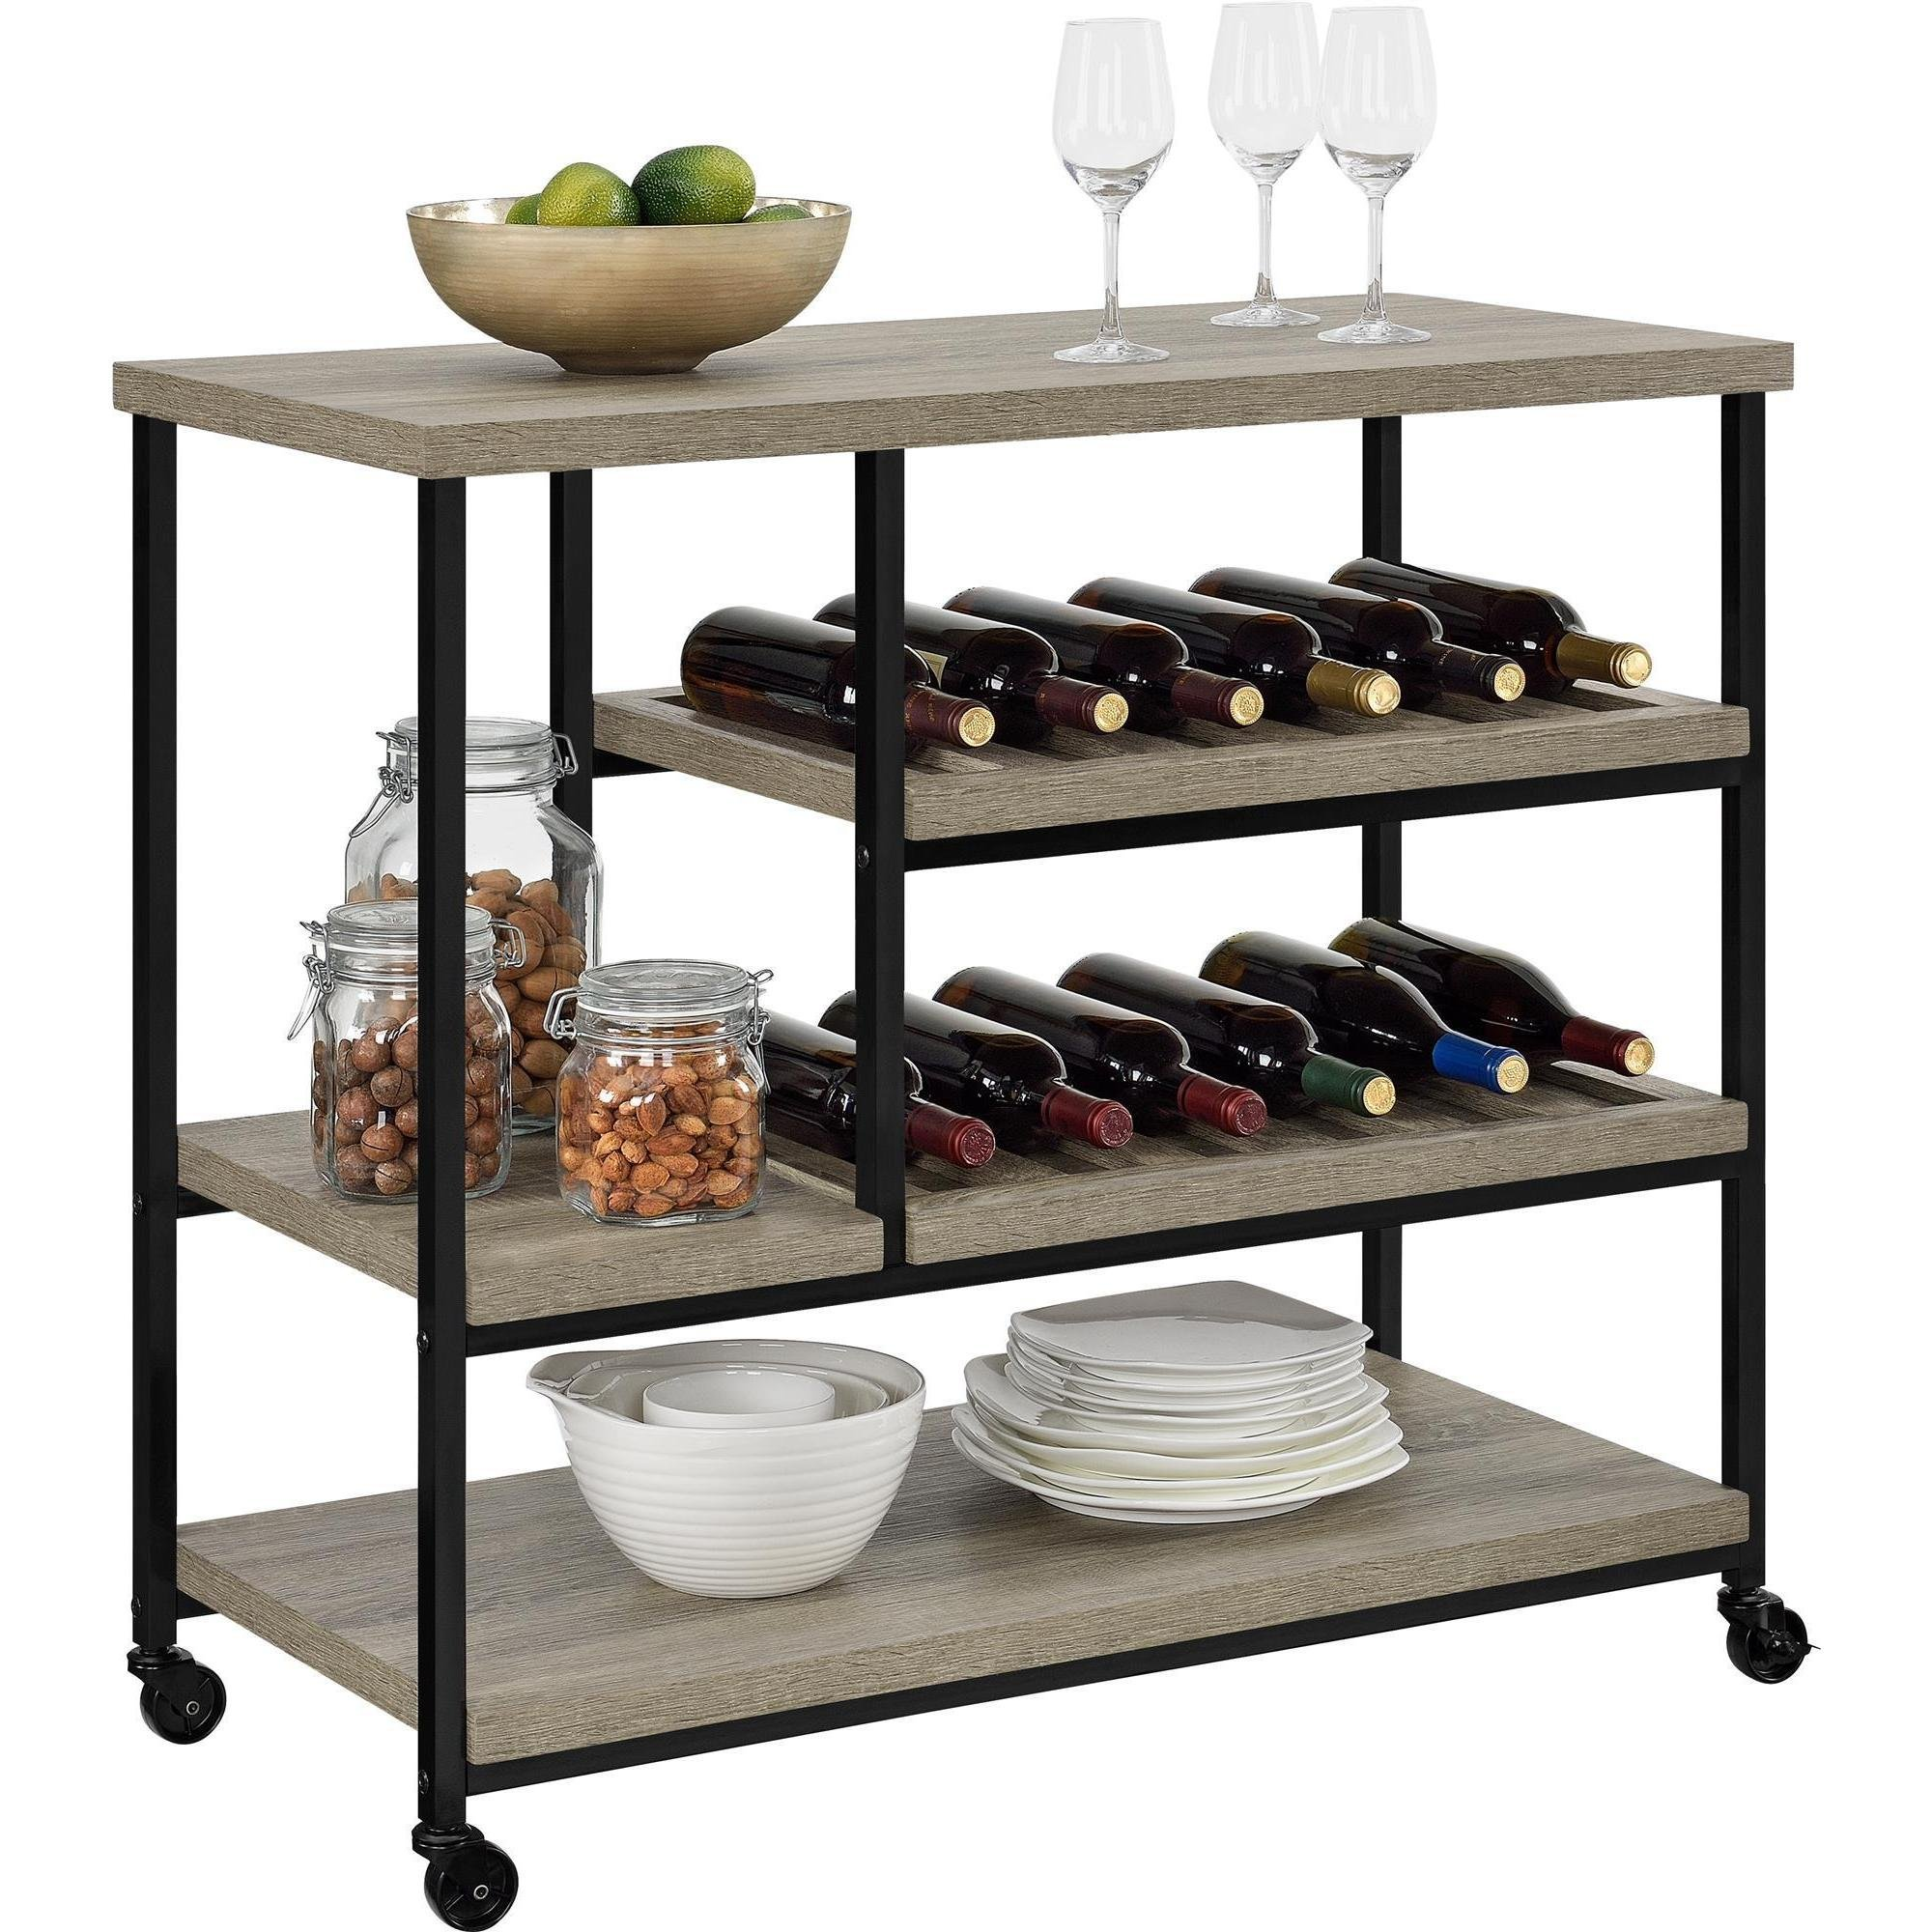 Modern Style Multi Purpose Kitchen Bar Wine Storage Rolling Cart Wooden Top with Black Metal Base | 2 Large Shelves, 2 Medium Shelves, 1 Small Shelf, Oak Finish - Includes Modhaus Living Pen